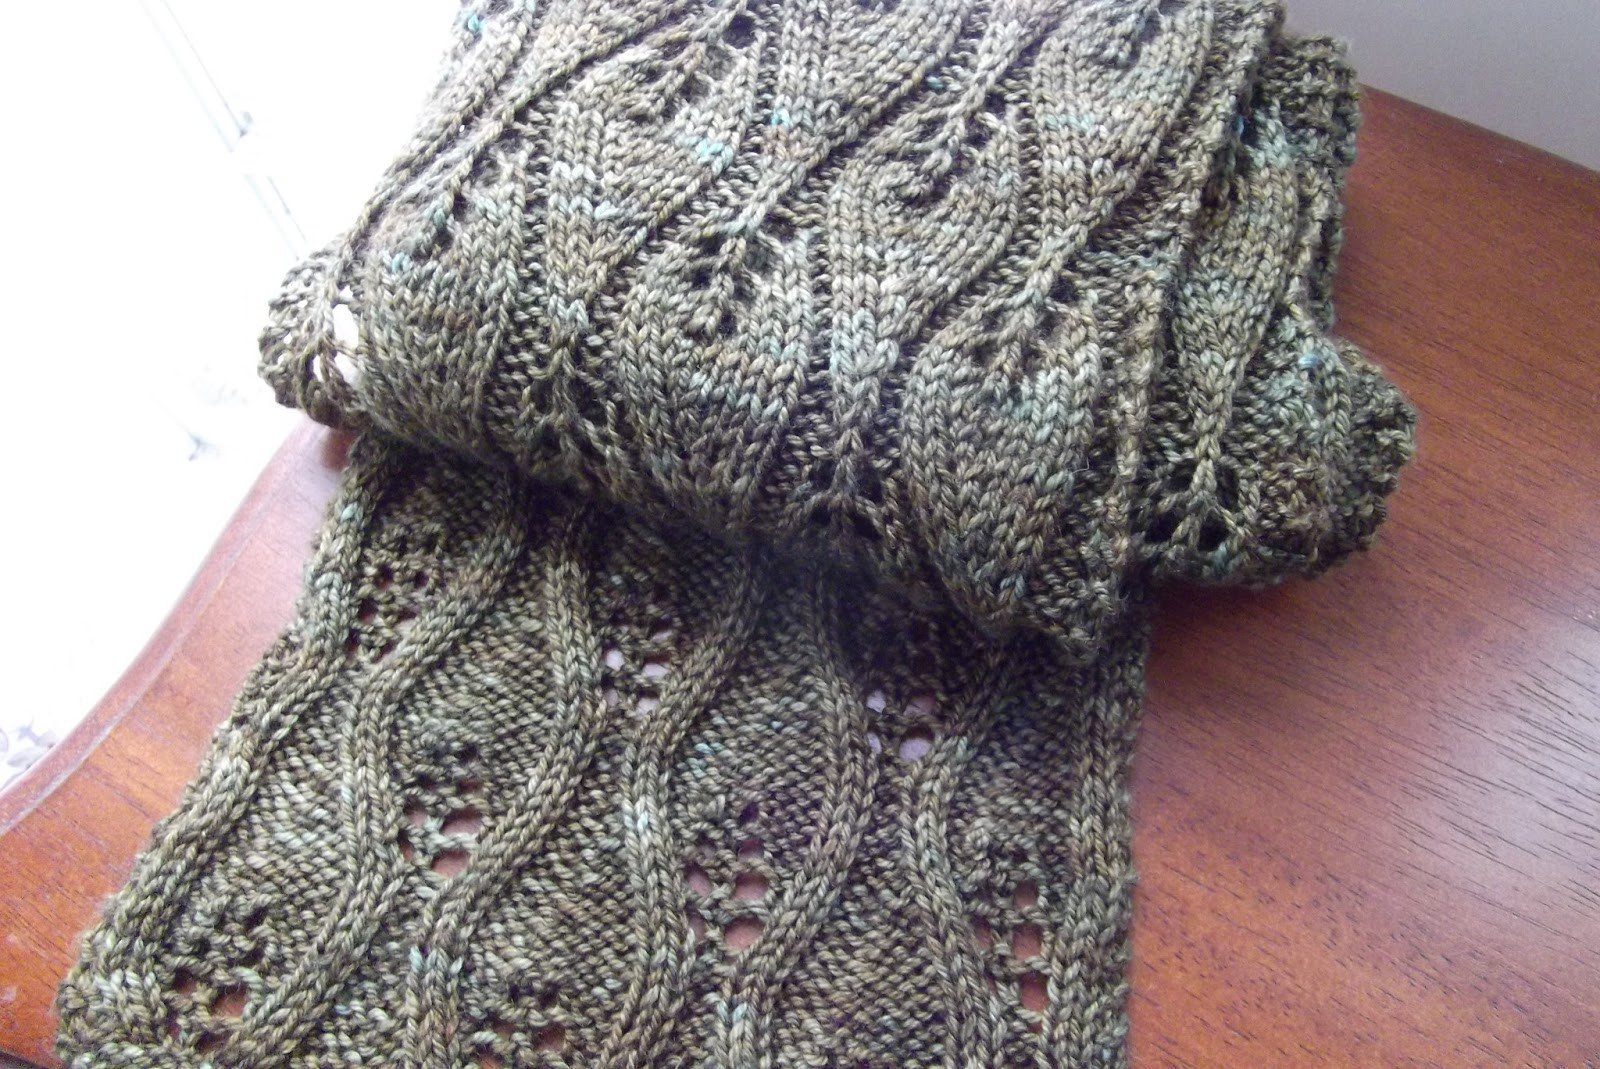 Candle Flame Scarf Free Knitting Pattern ⋆ Knitting Bee